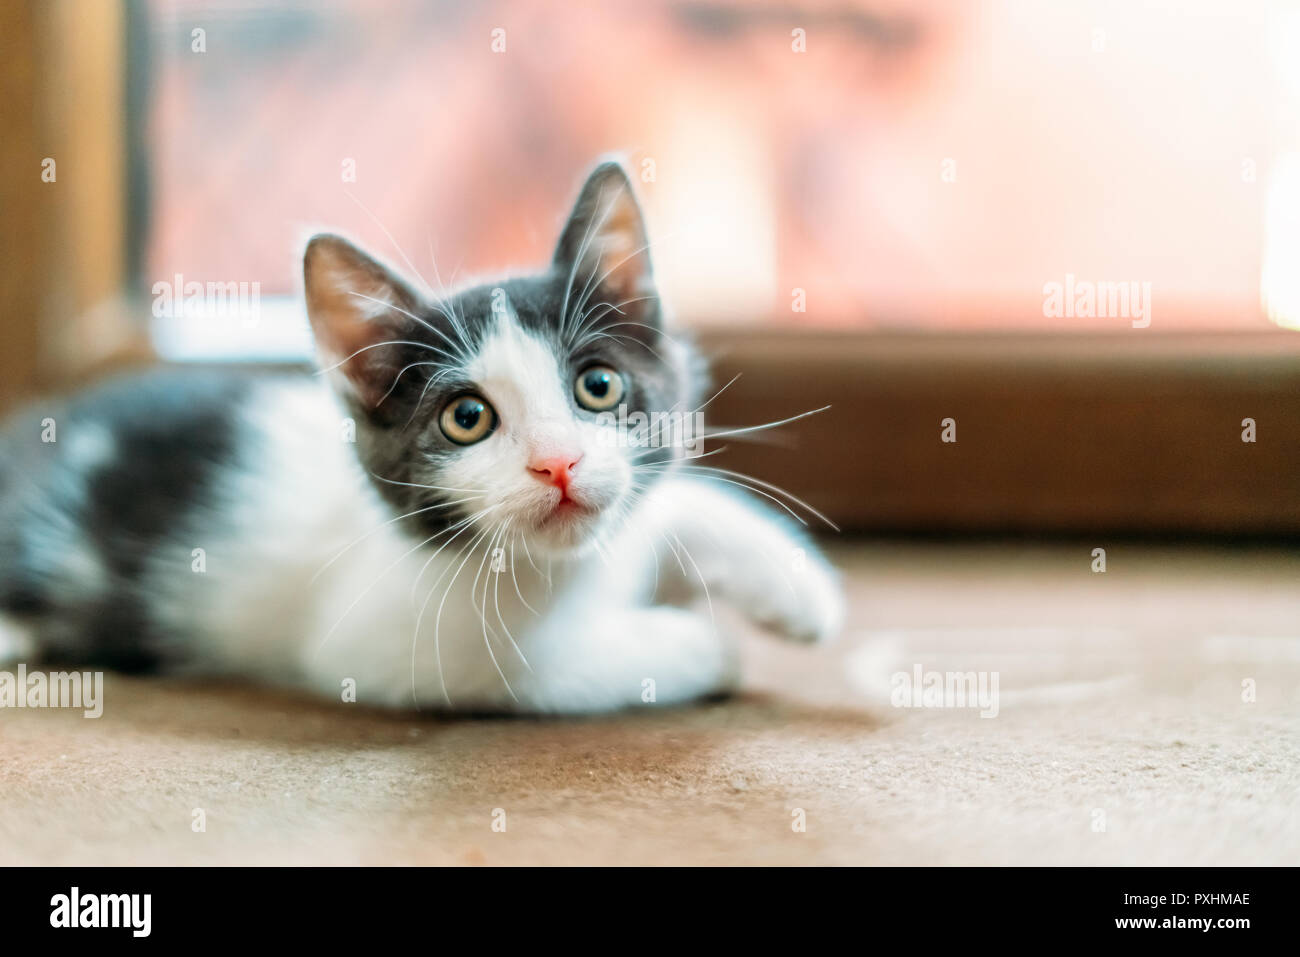 Cute Baby Cat Portrait At Home - Stock Image